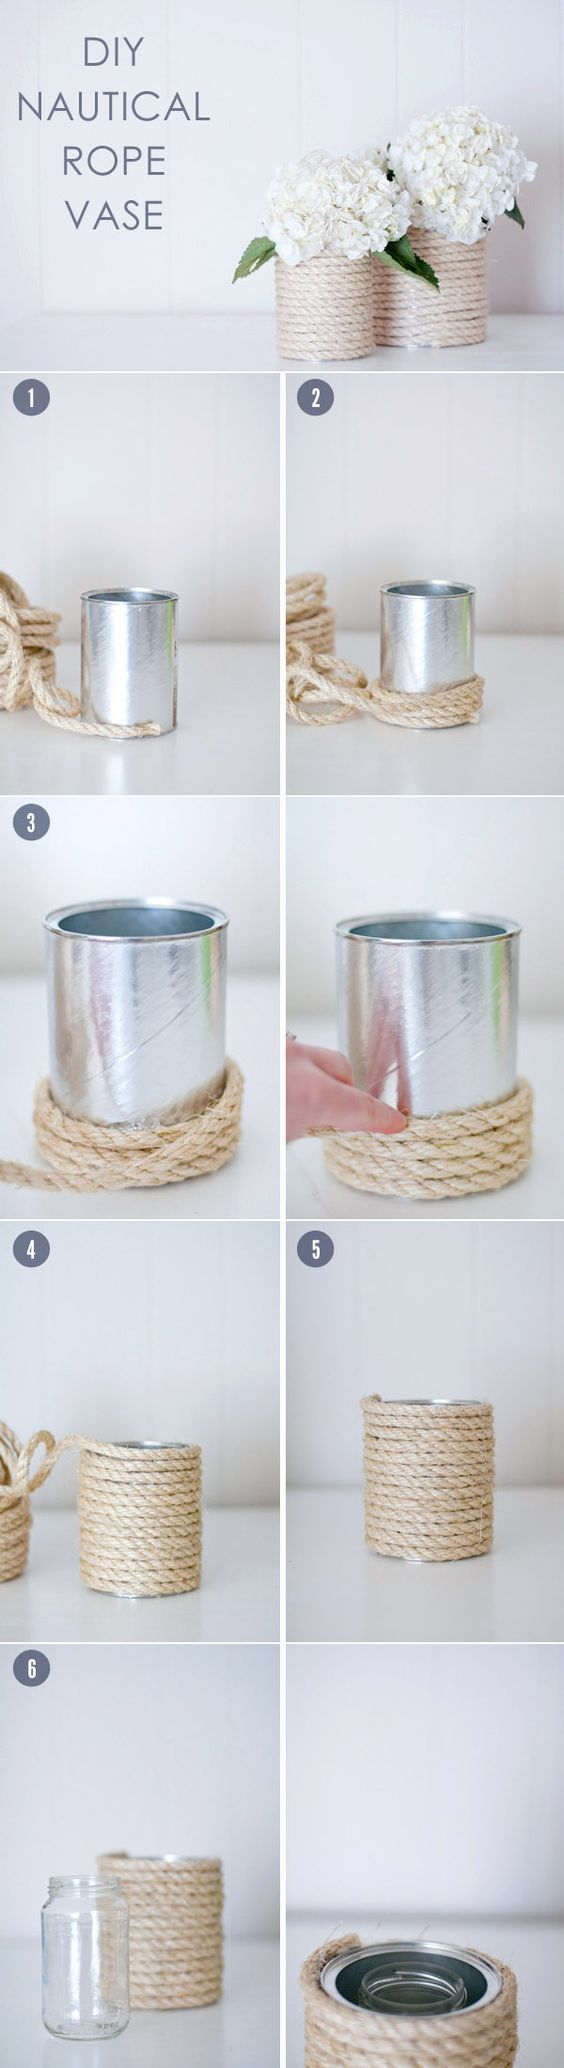 14. NAUTICAL ROPE VASE PERFECT FOR WEDDINGS